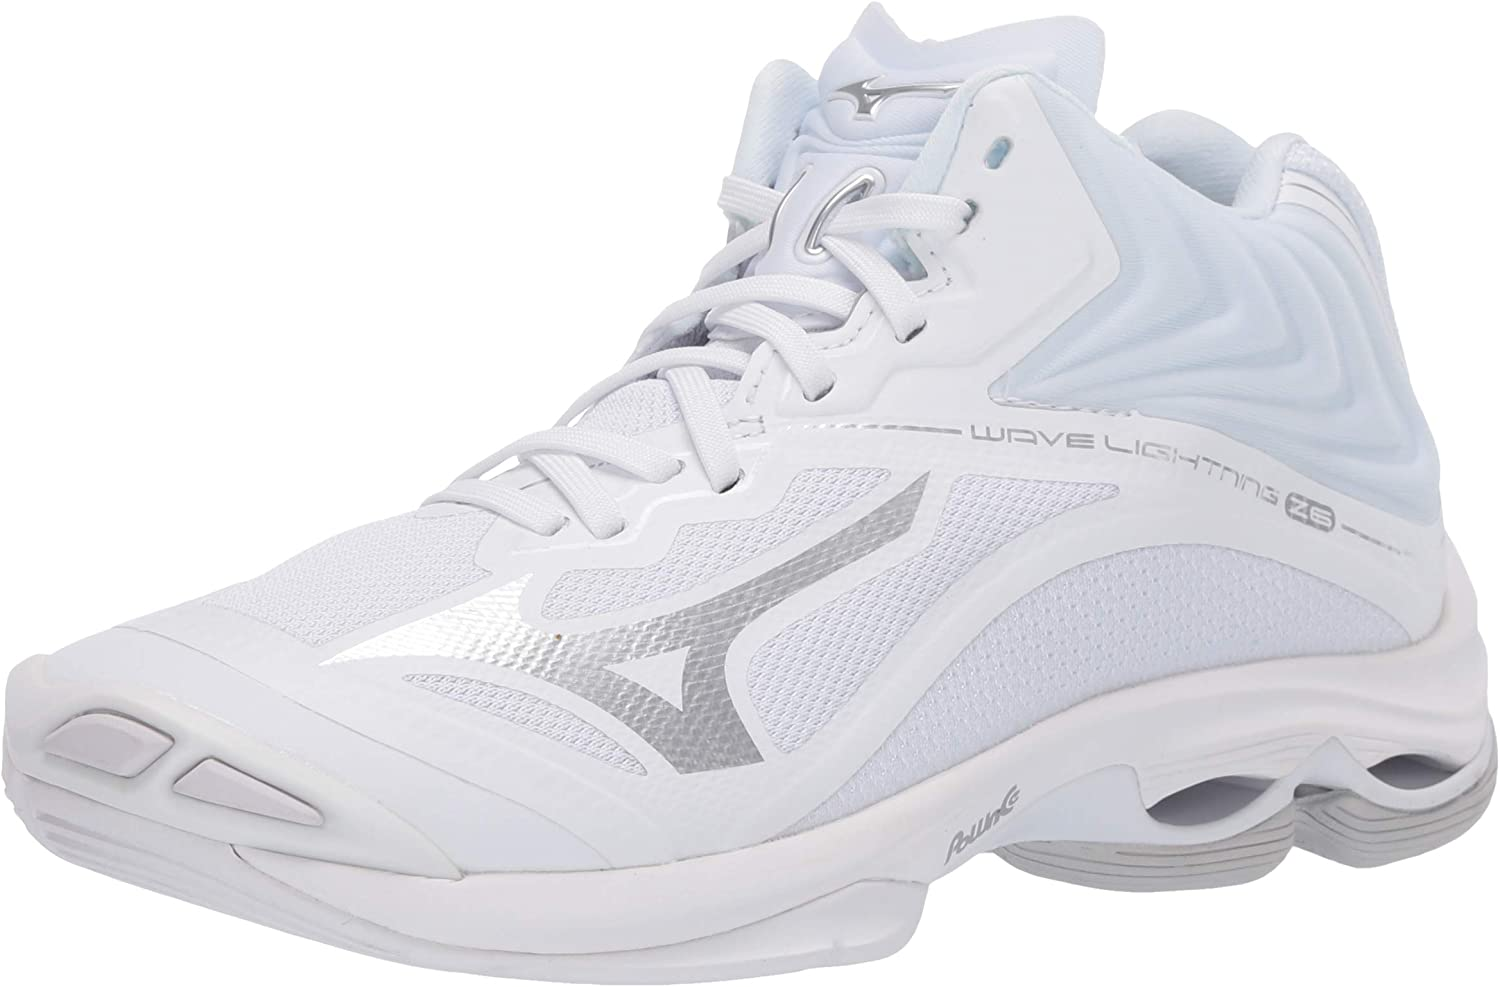 Limited time cheap sale Mizuno Women's Free Shipping New Wave Lightning Mid Z6 Shoe Volleyball